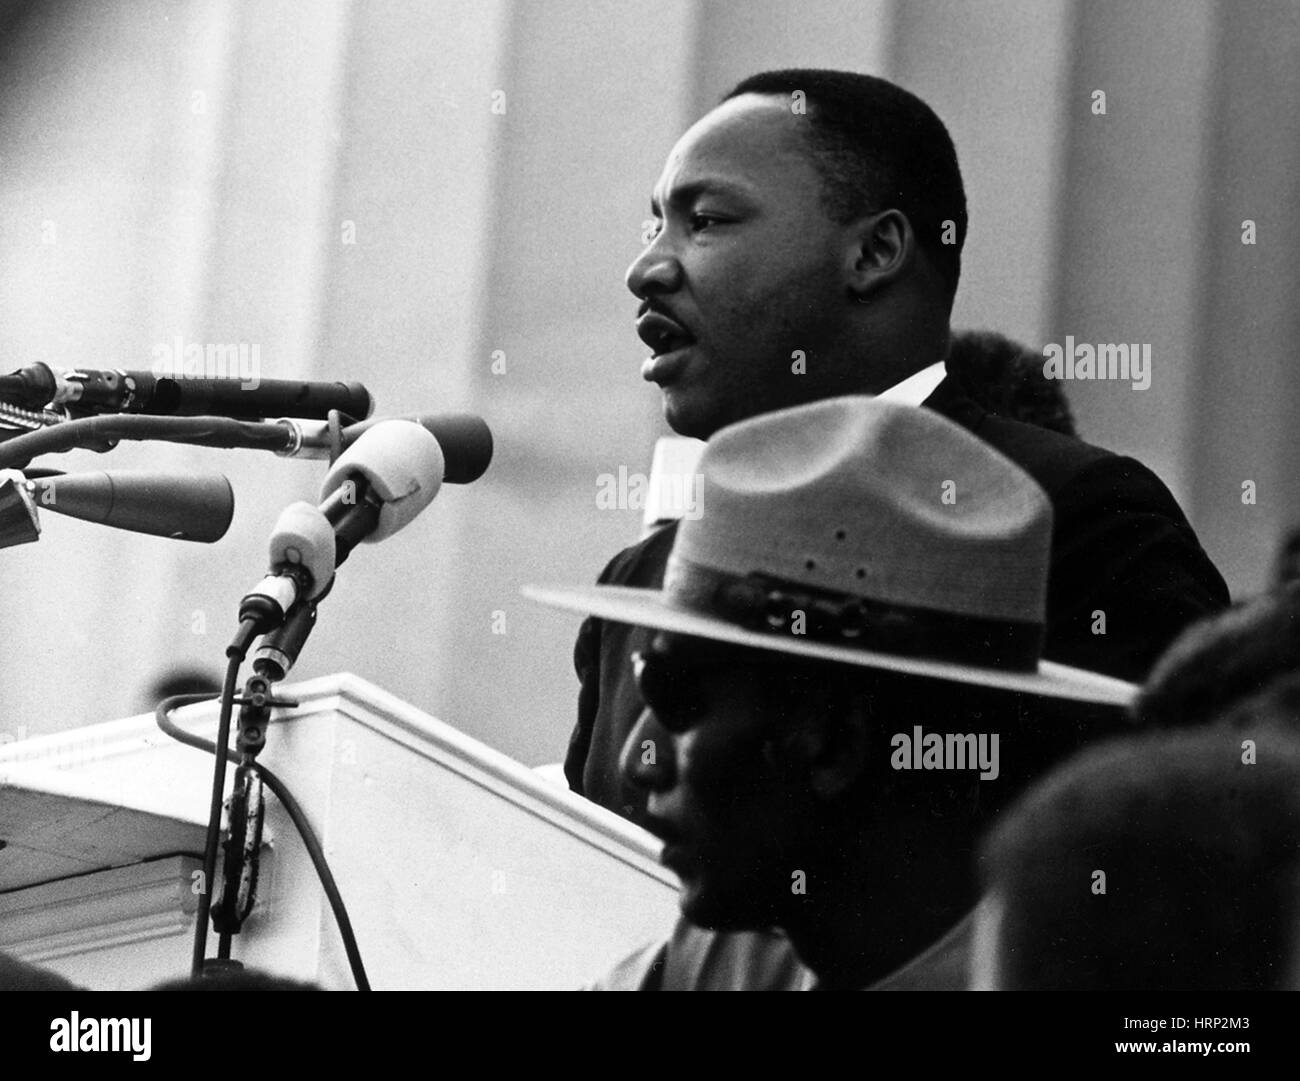 Martin Luther King Jr., March on Washington, 1963 - Stock Image